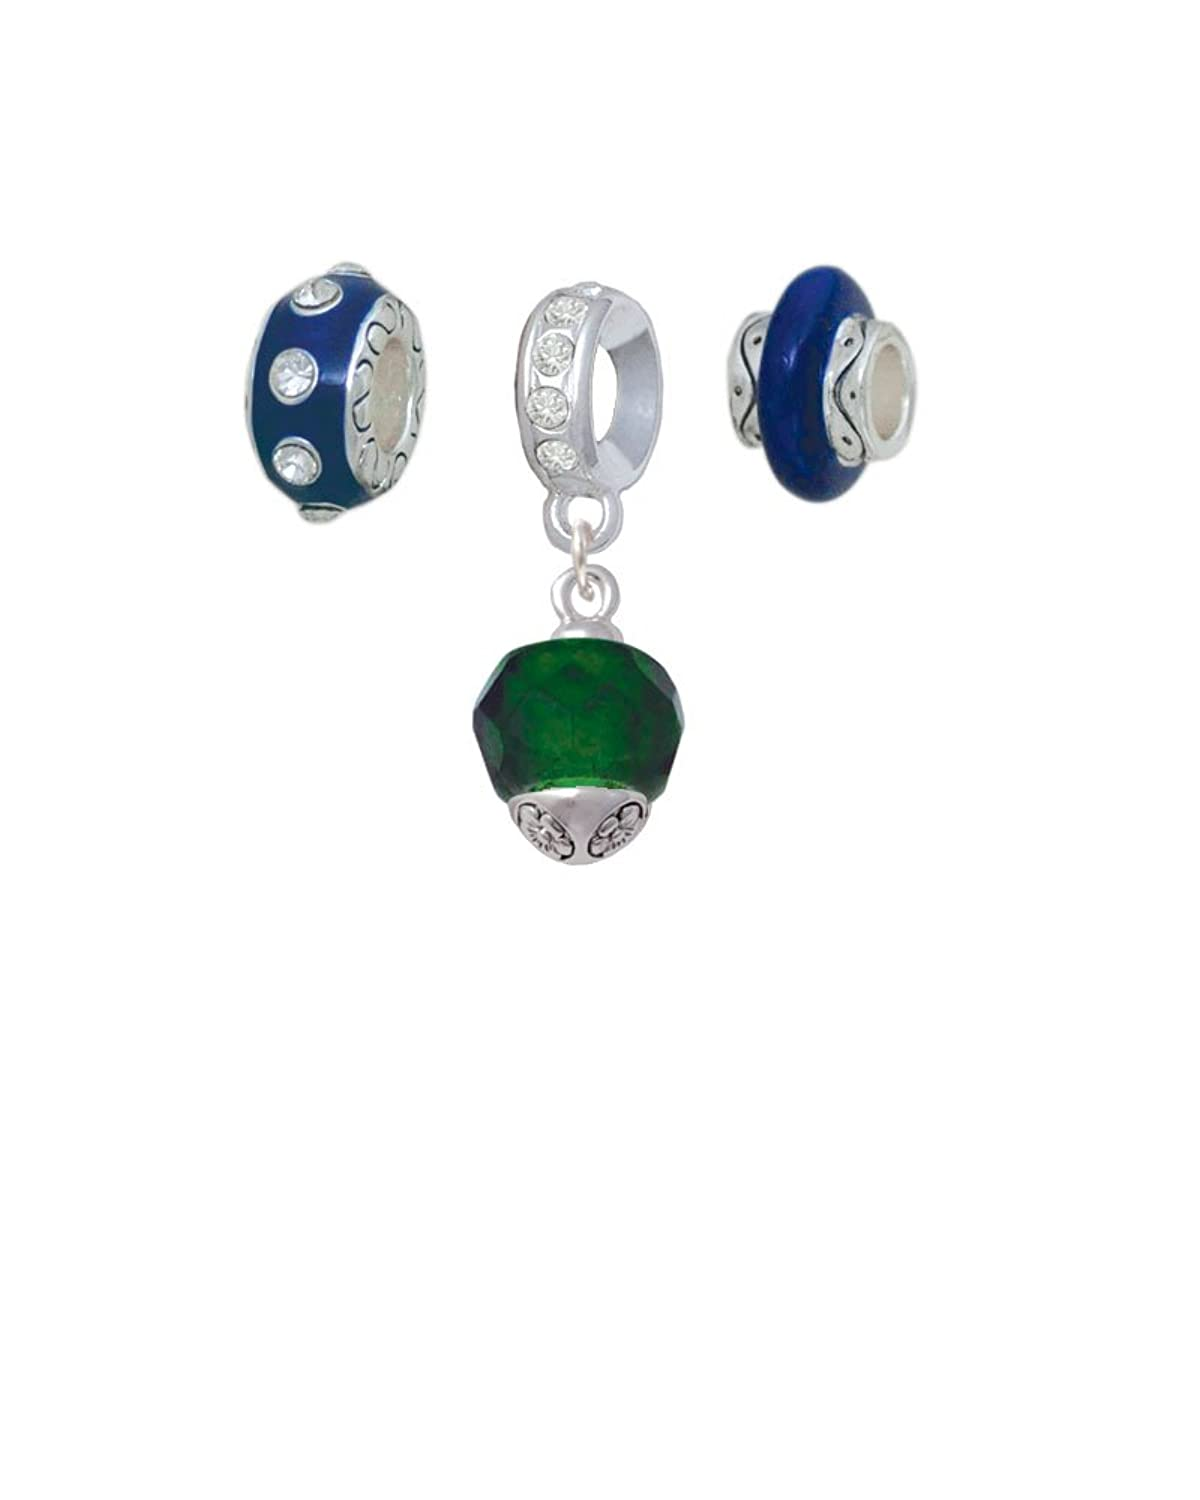 12mm Faceted Glass Spinner Navy Charm Beads (Set of 3)